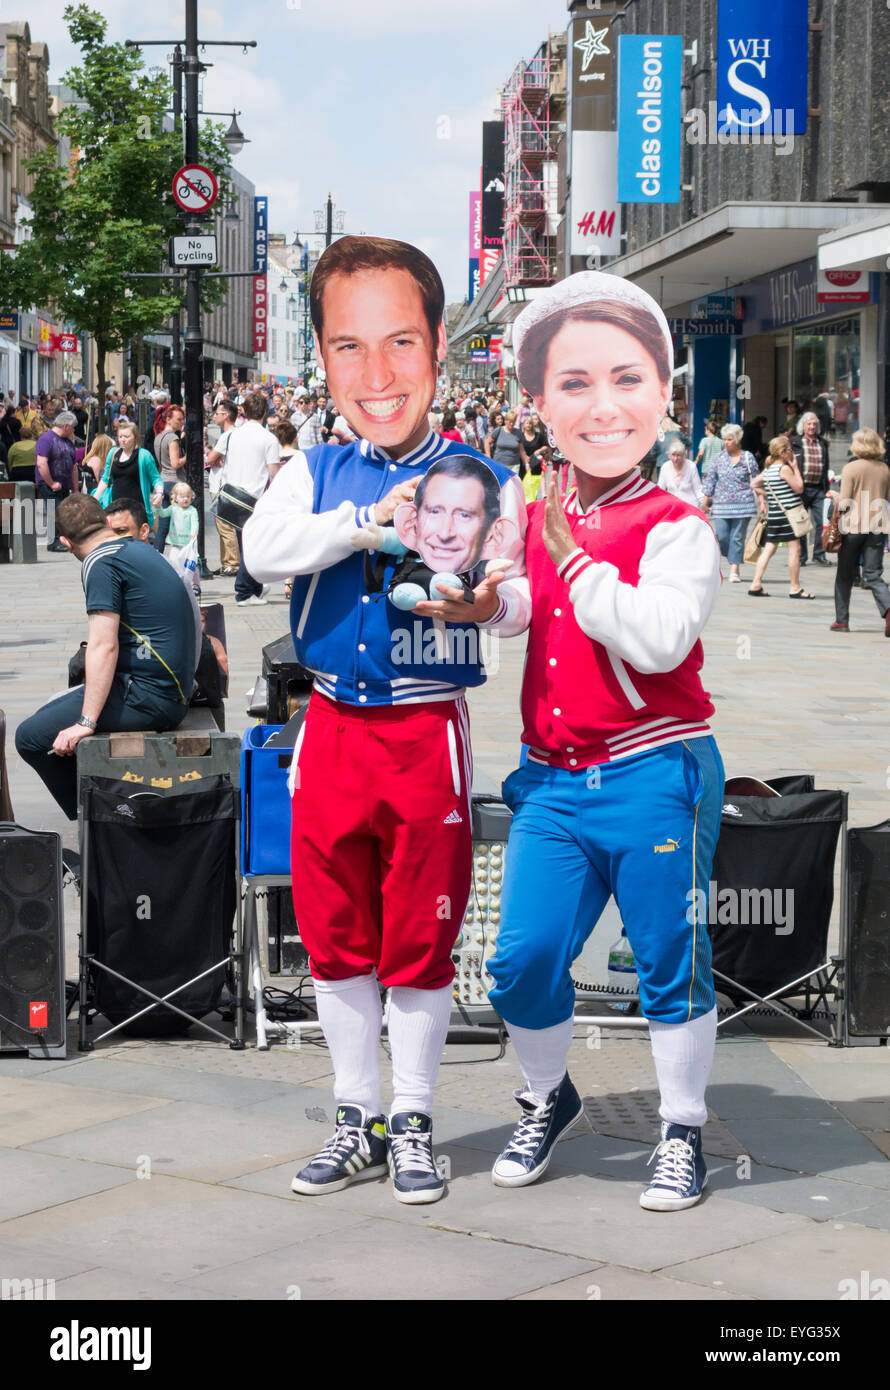 Buskers wearing masks of famous people/celebrites performing on Northumberland St. in Newcastle upon Tyne. England. Stock Photo